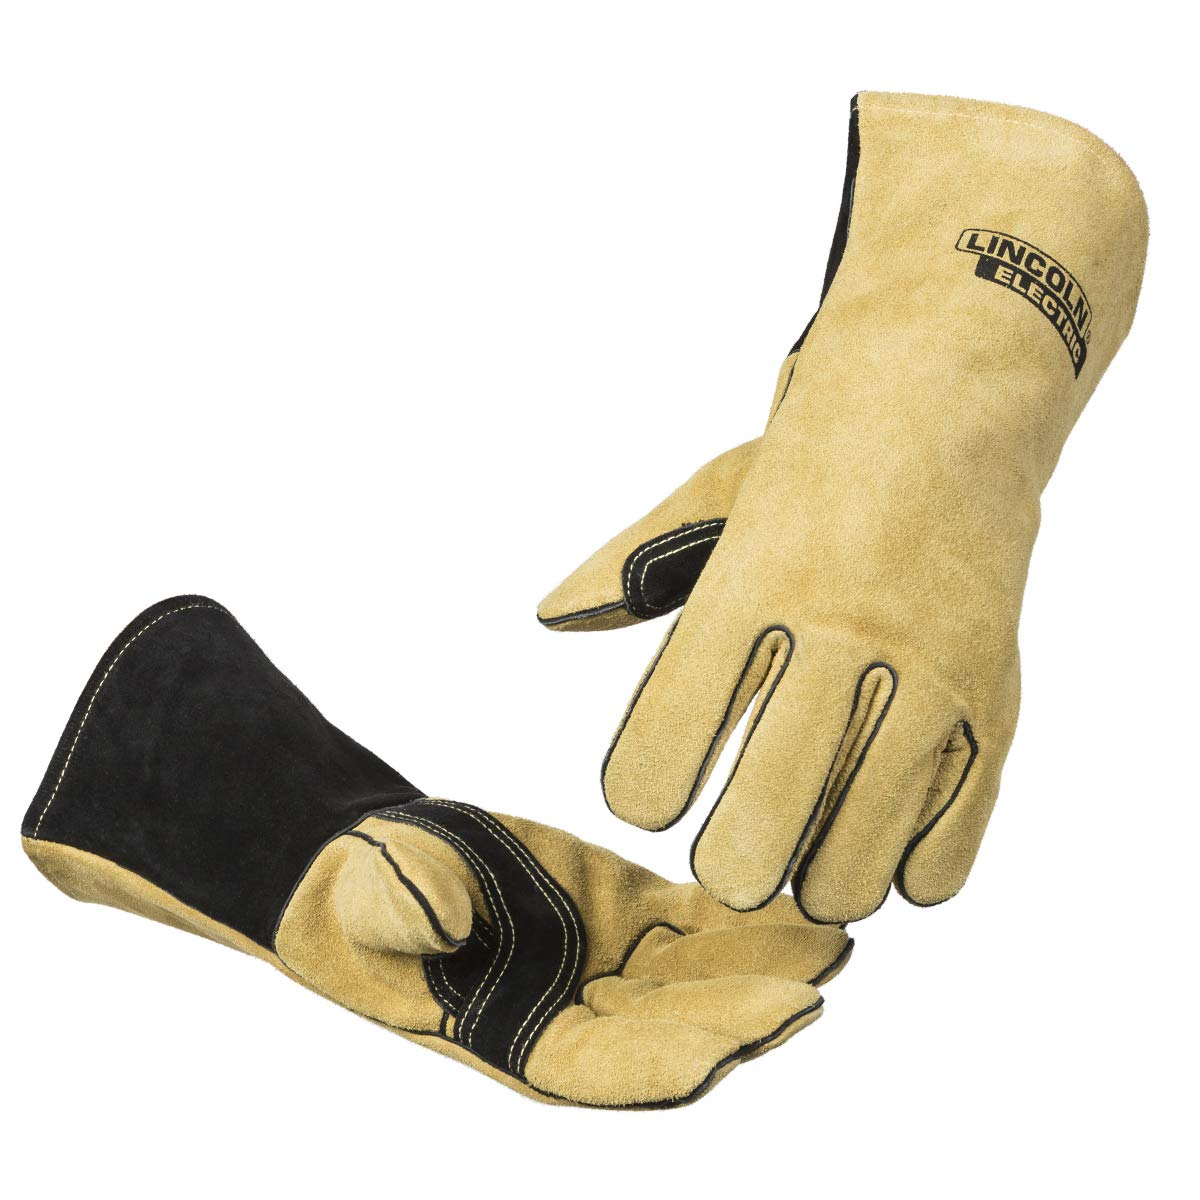 Lincoln Electric Heavy Duty MIG/Stick Welding Gloves | Heat Resistant & Durabilty  | XL | K4082-XL by Lincoln Electric